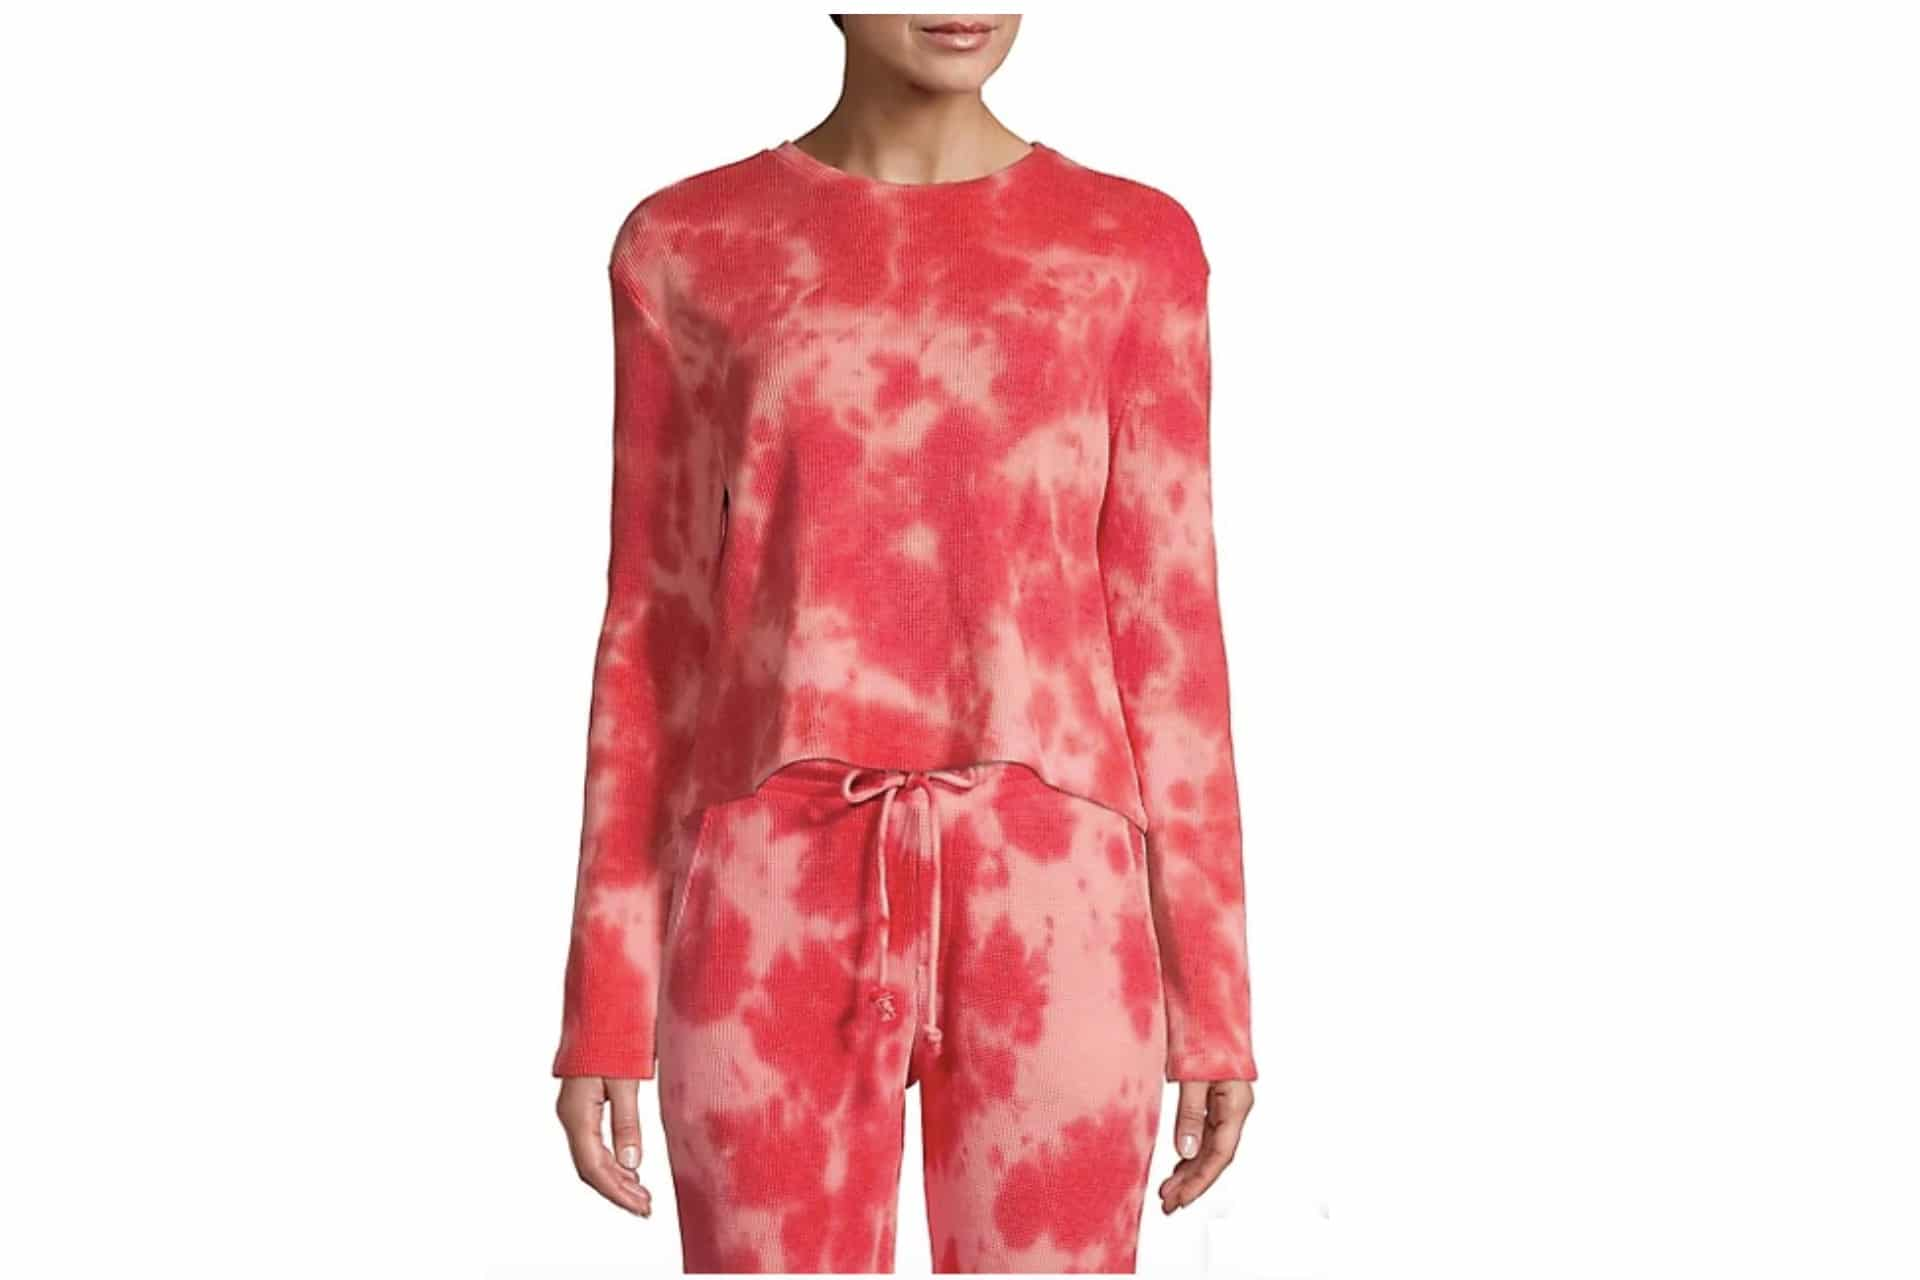 red and white tie dye shirt and pants